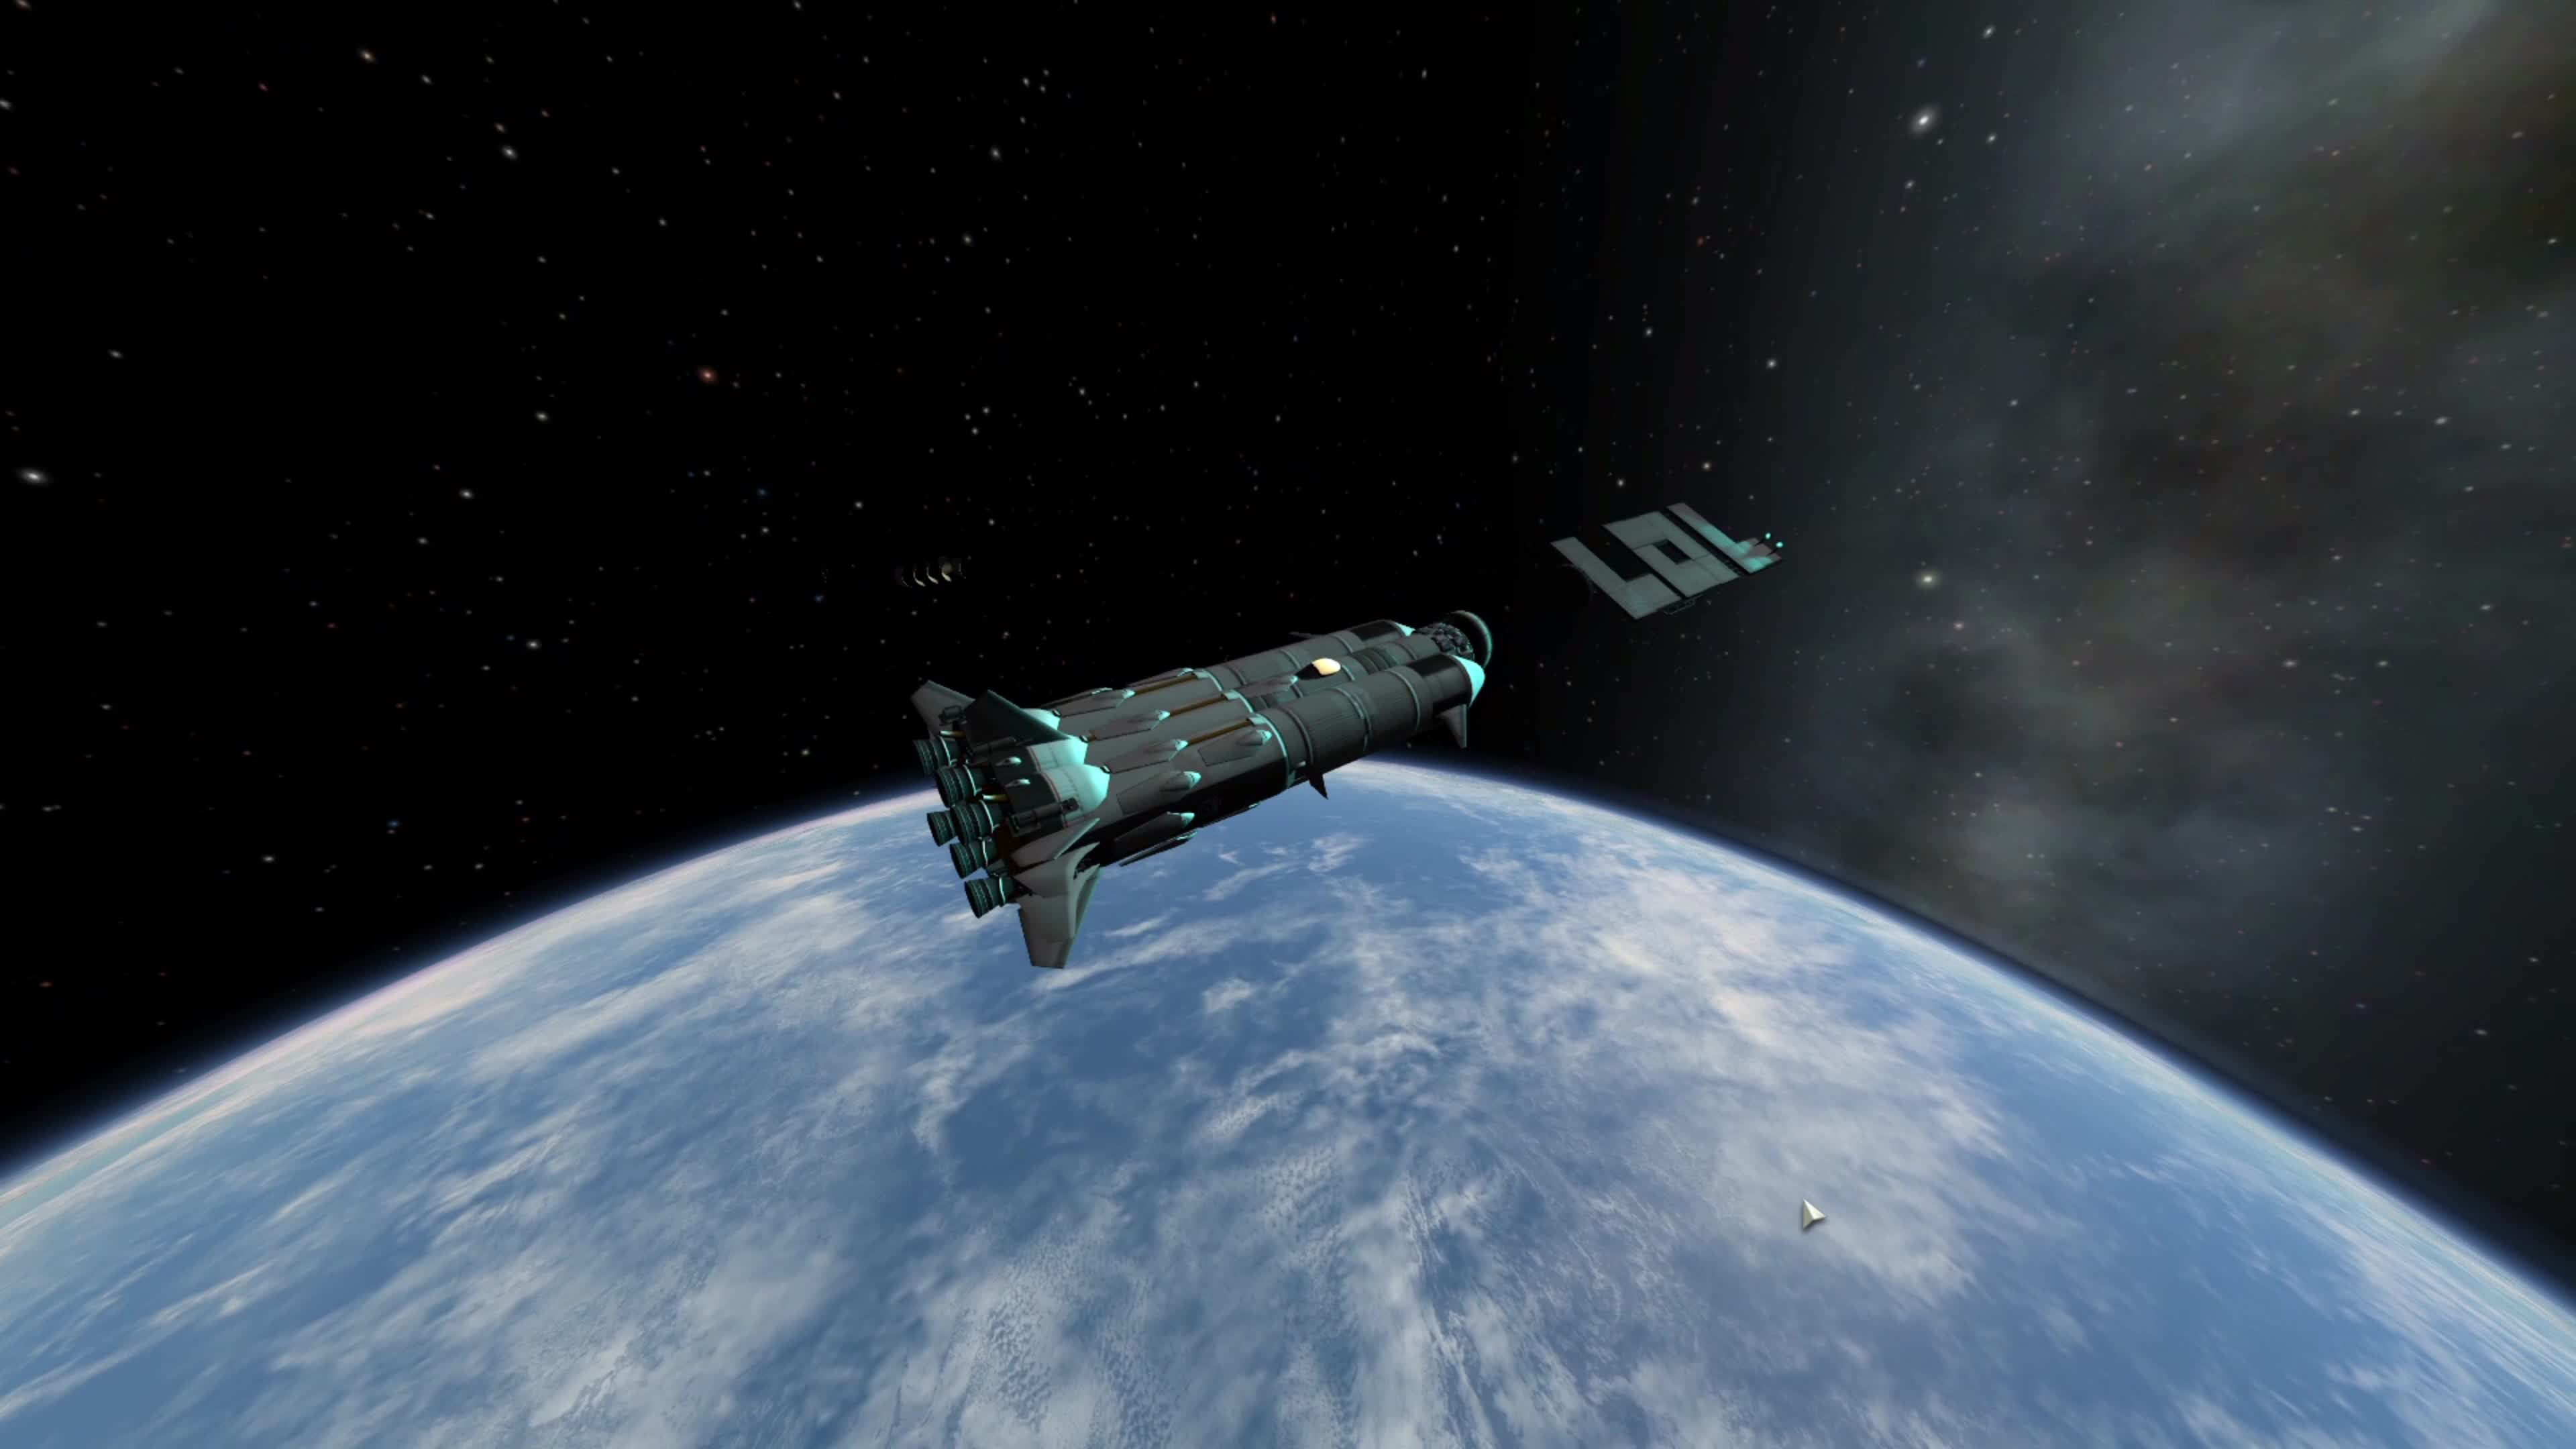 KSP, Kerbal Space Program, KerbalSpaceProgram, Up to the LOL GIFs